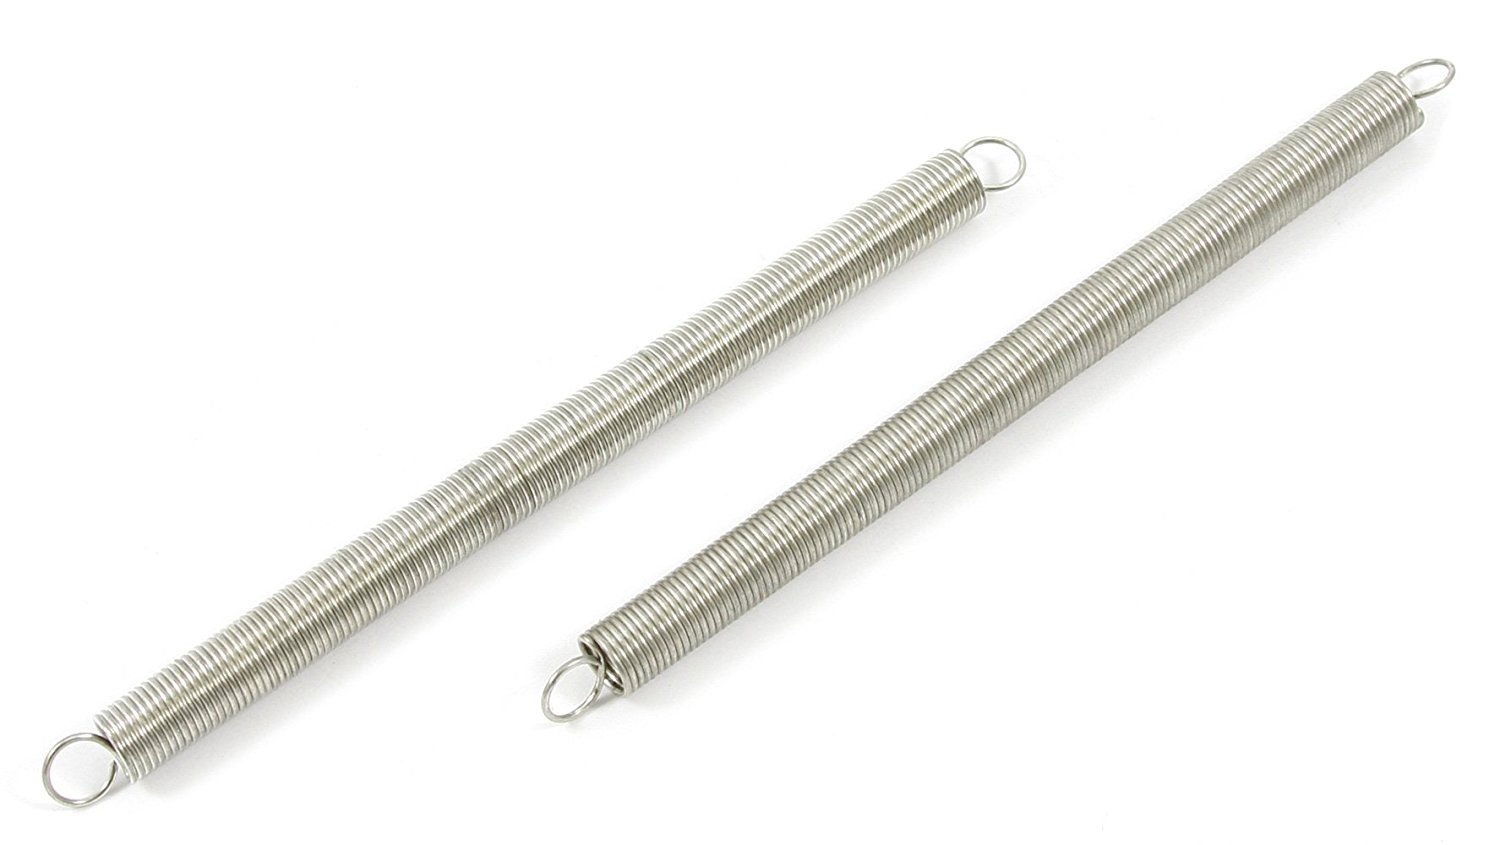 Forney 72580 Wire Spring Extension, 5/16-Inch-by-5-Inch-by-.032-Inch, 2-Pack